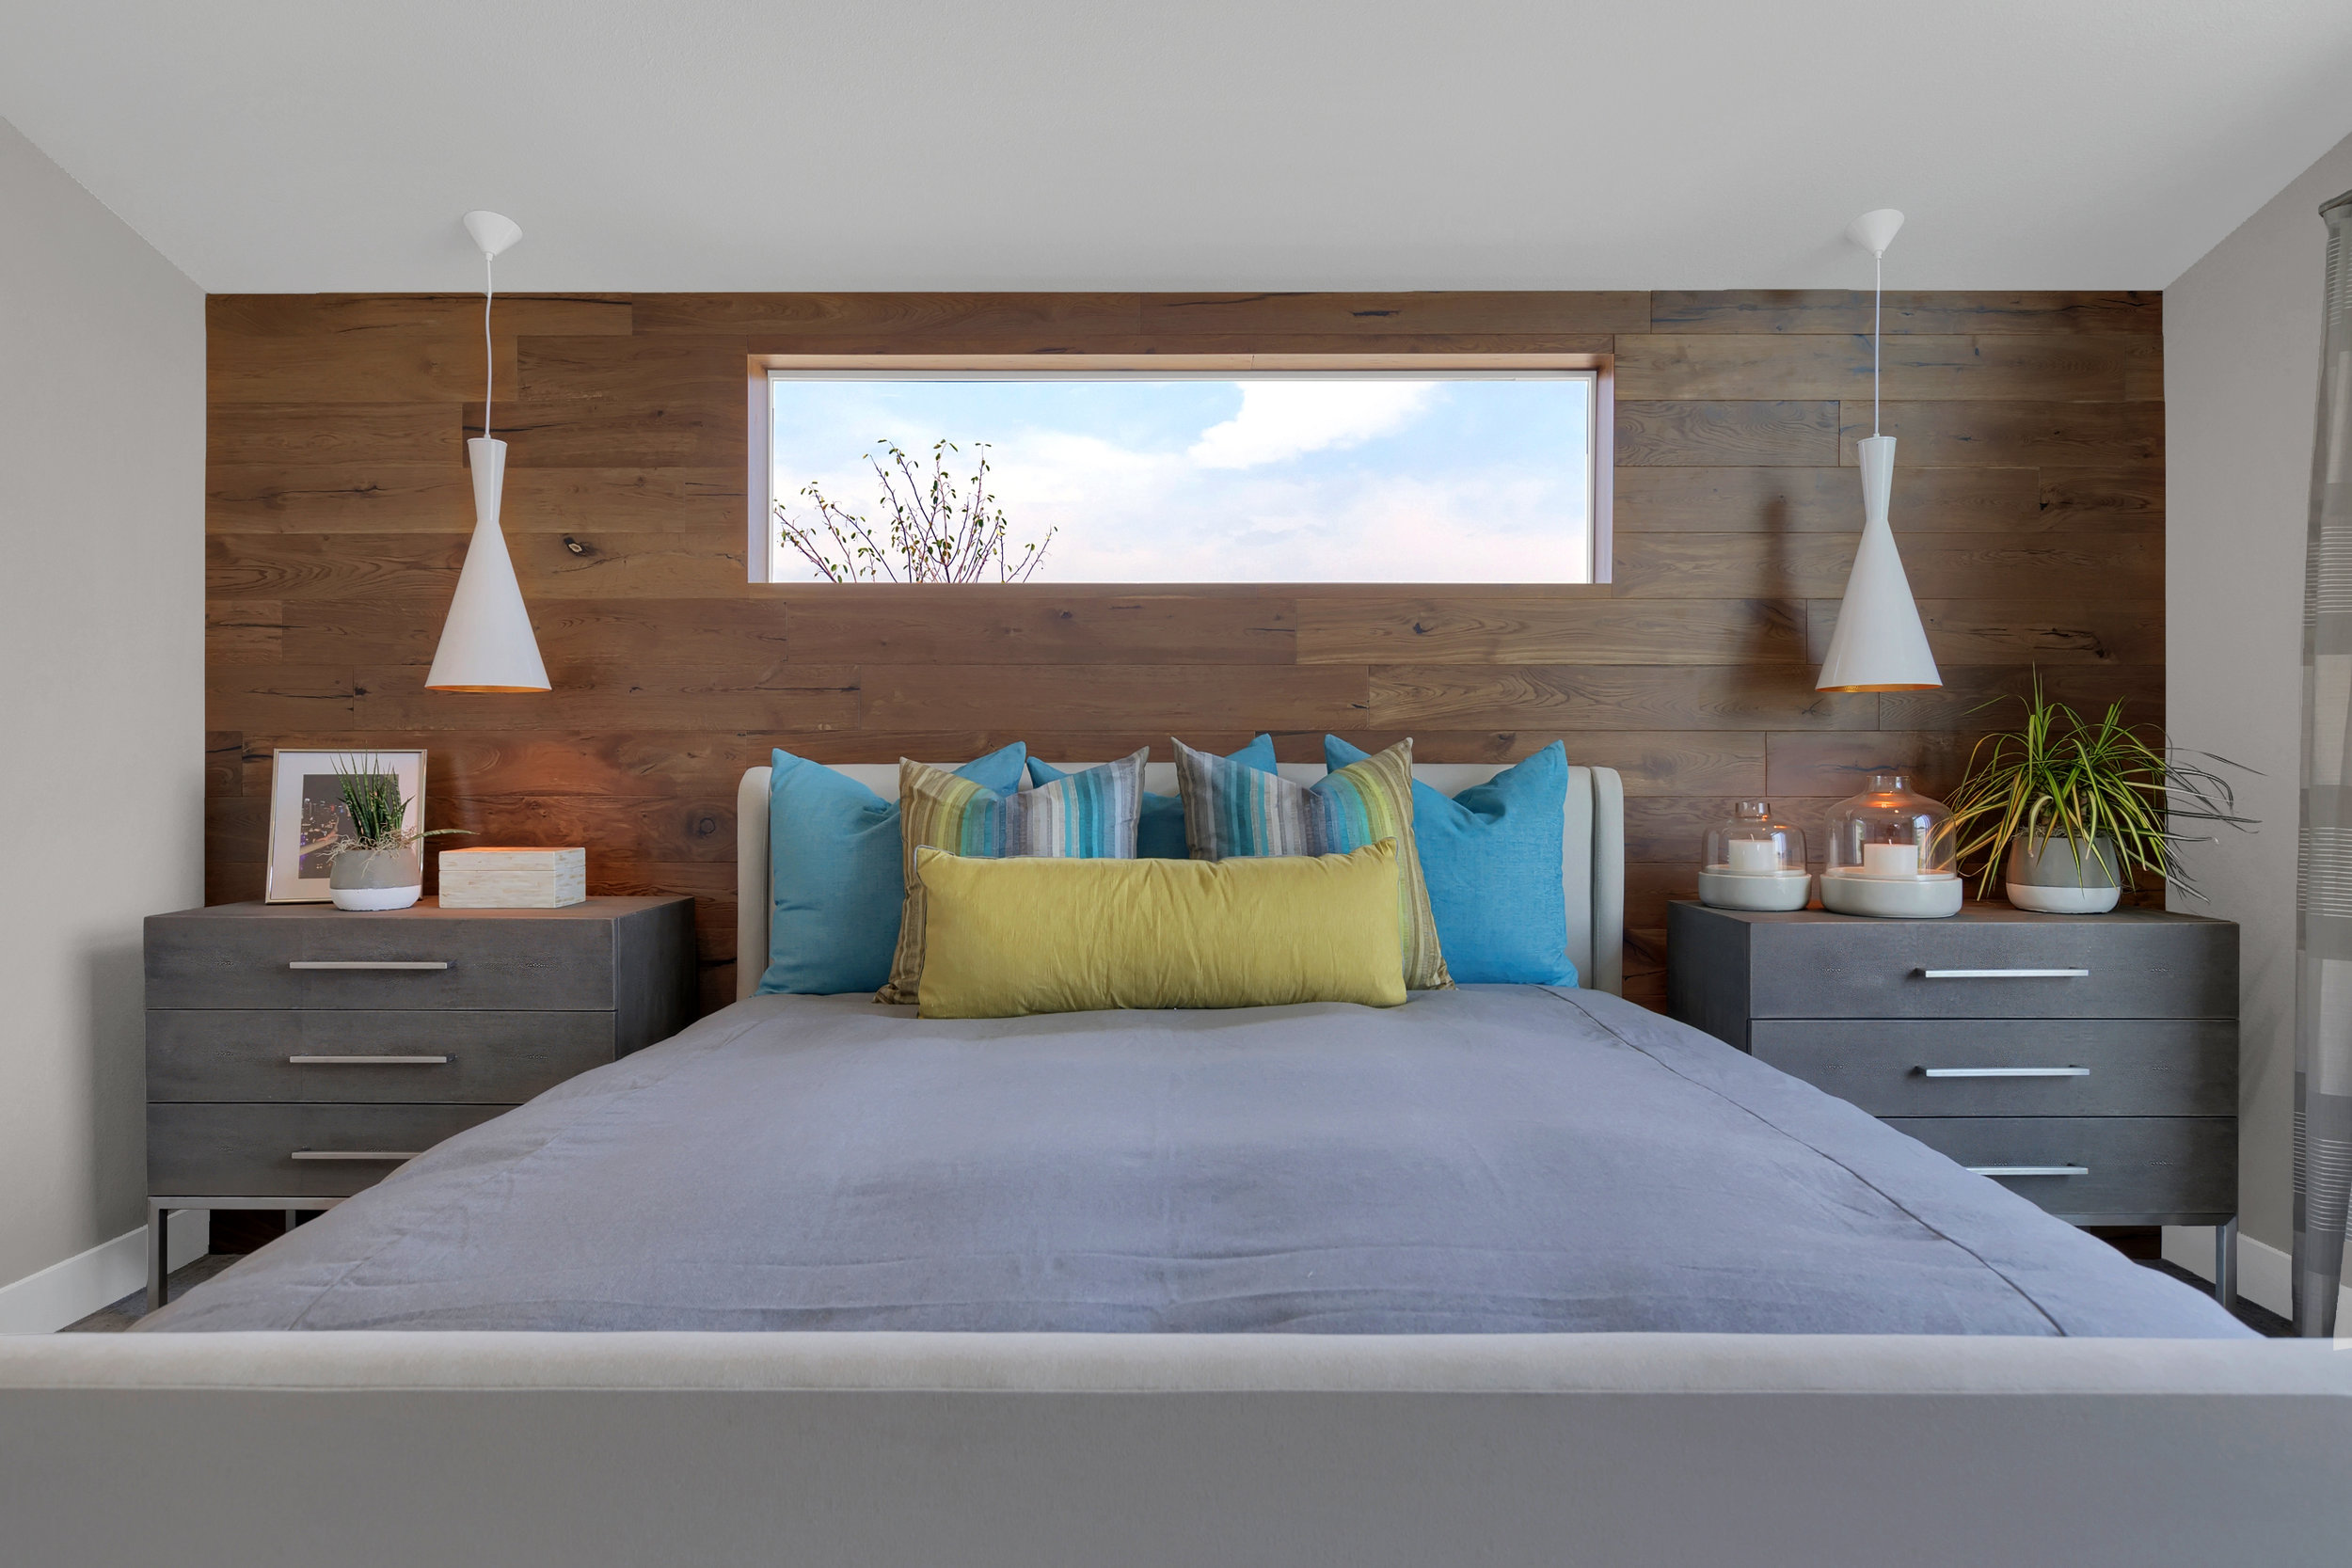 keller-homes-daphne-mid-century-modern-master-bed-colorado-springs.jpg